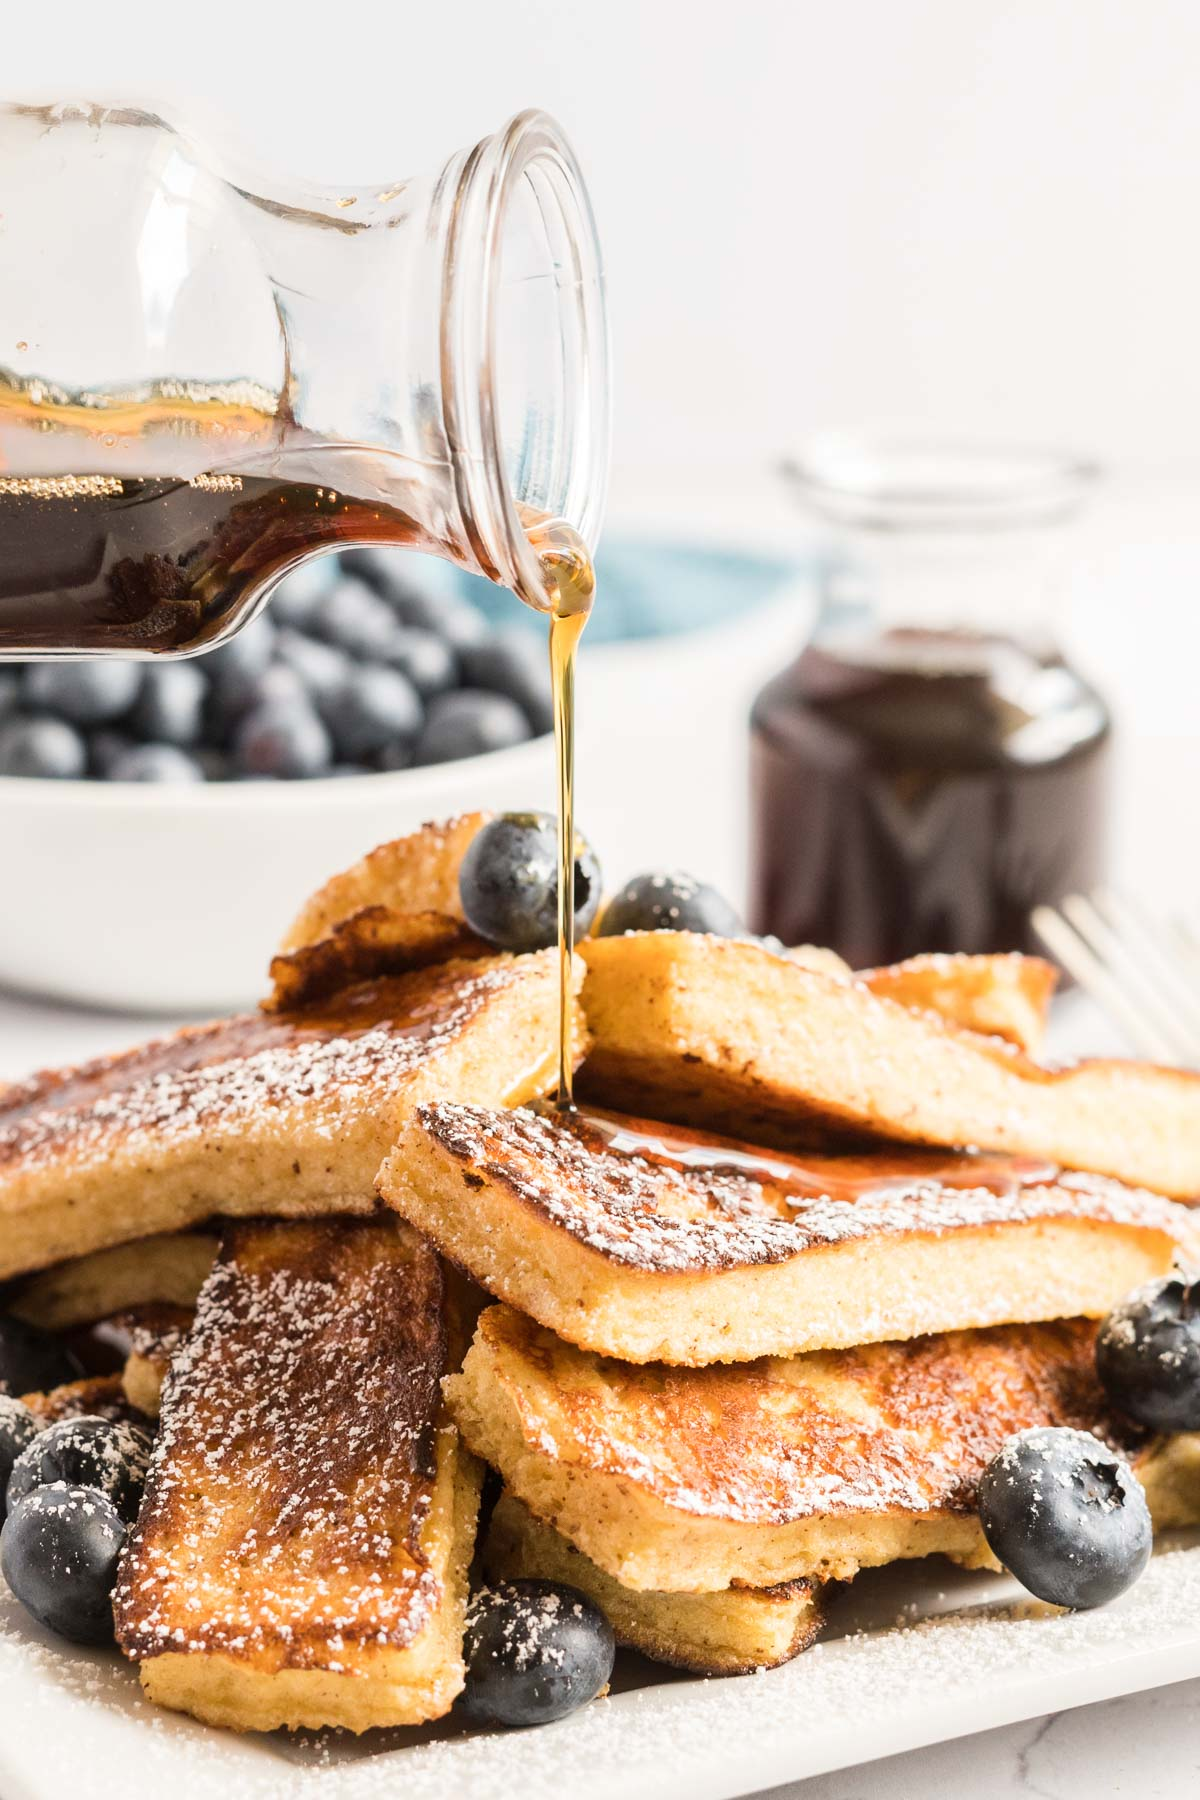 Pouring syrup on a stack of French toast.